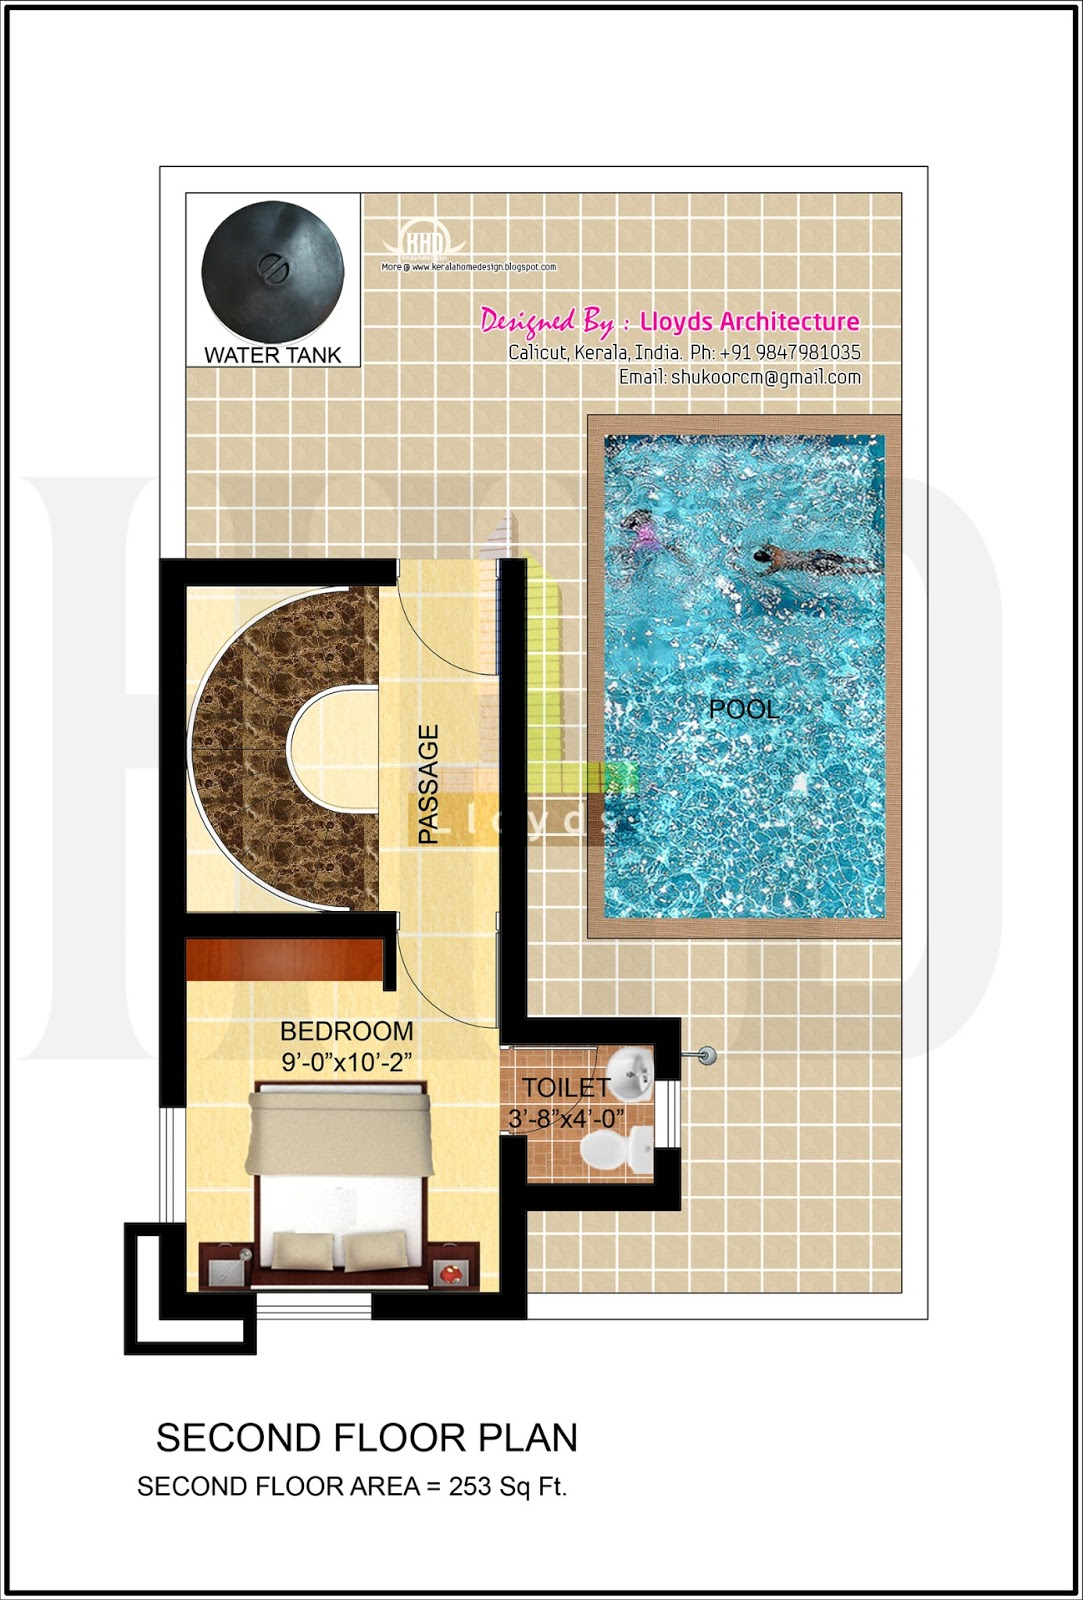 Home plans with pool home designs with pool from homeplans com - 1 Attached Bedroom Swimming Pool Second Floor Plan